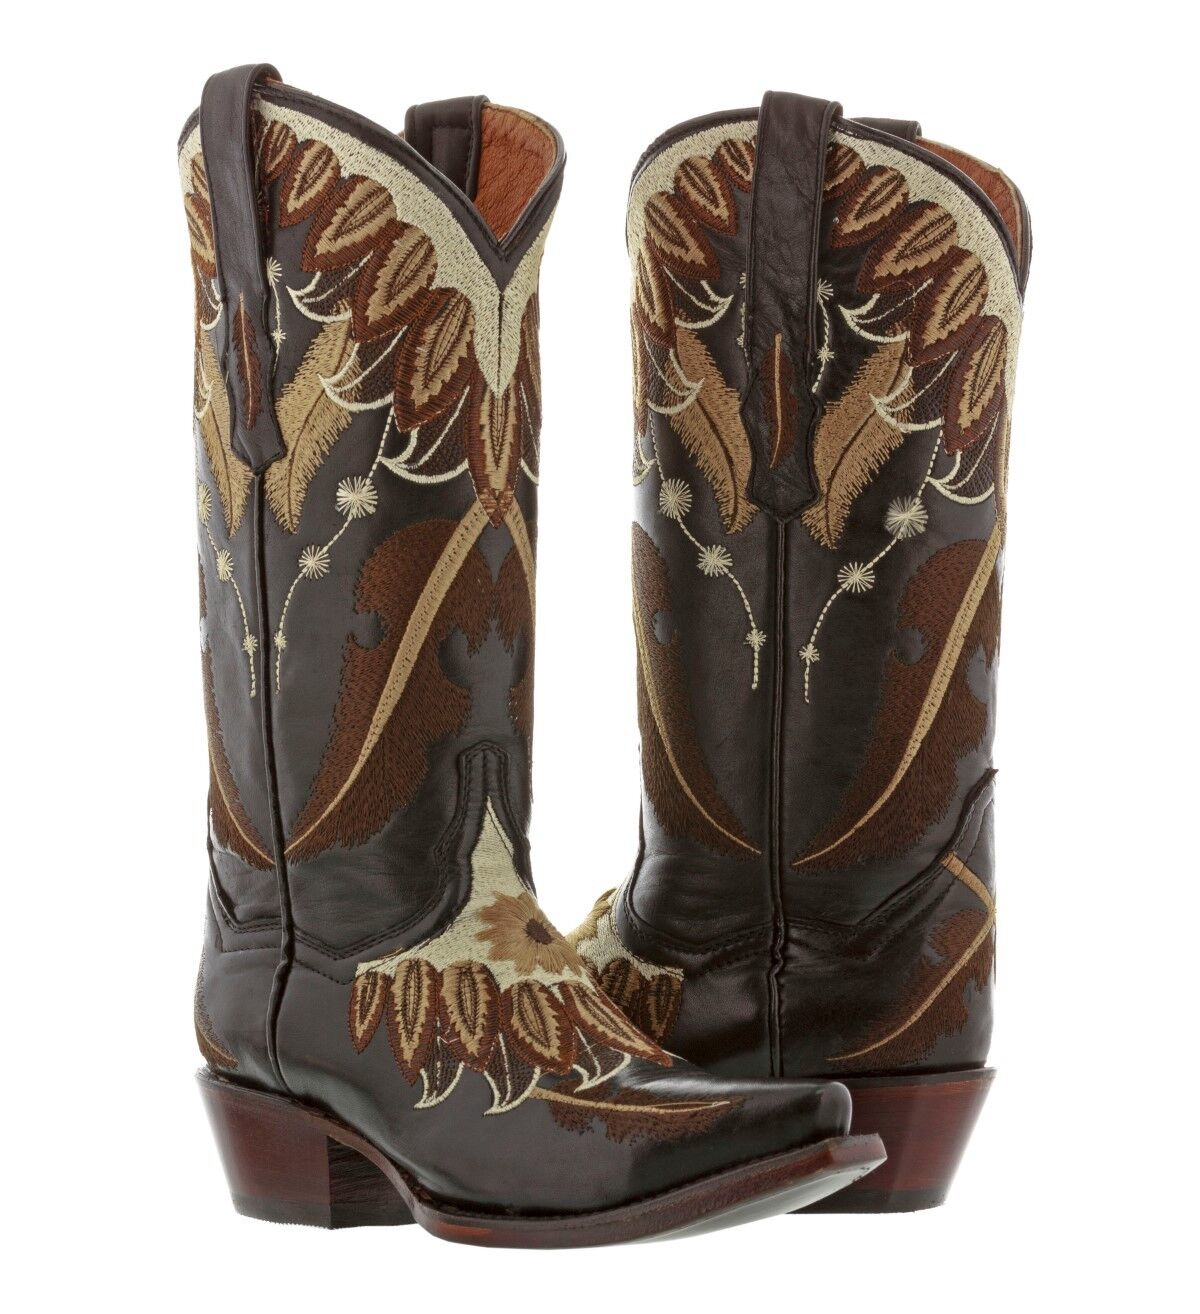 Womens Black Feathered Embroidered Leather Cowgirl Boots Western Snip Toe